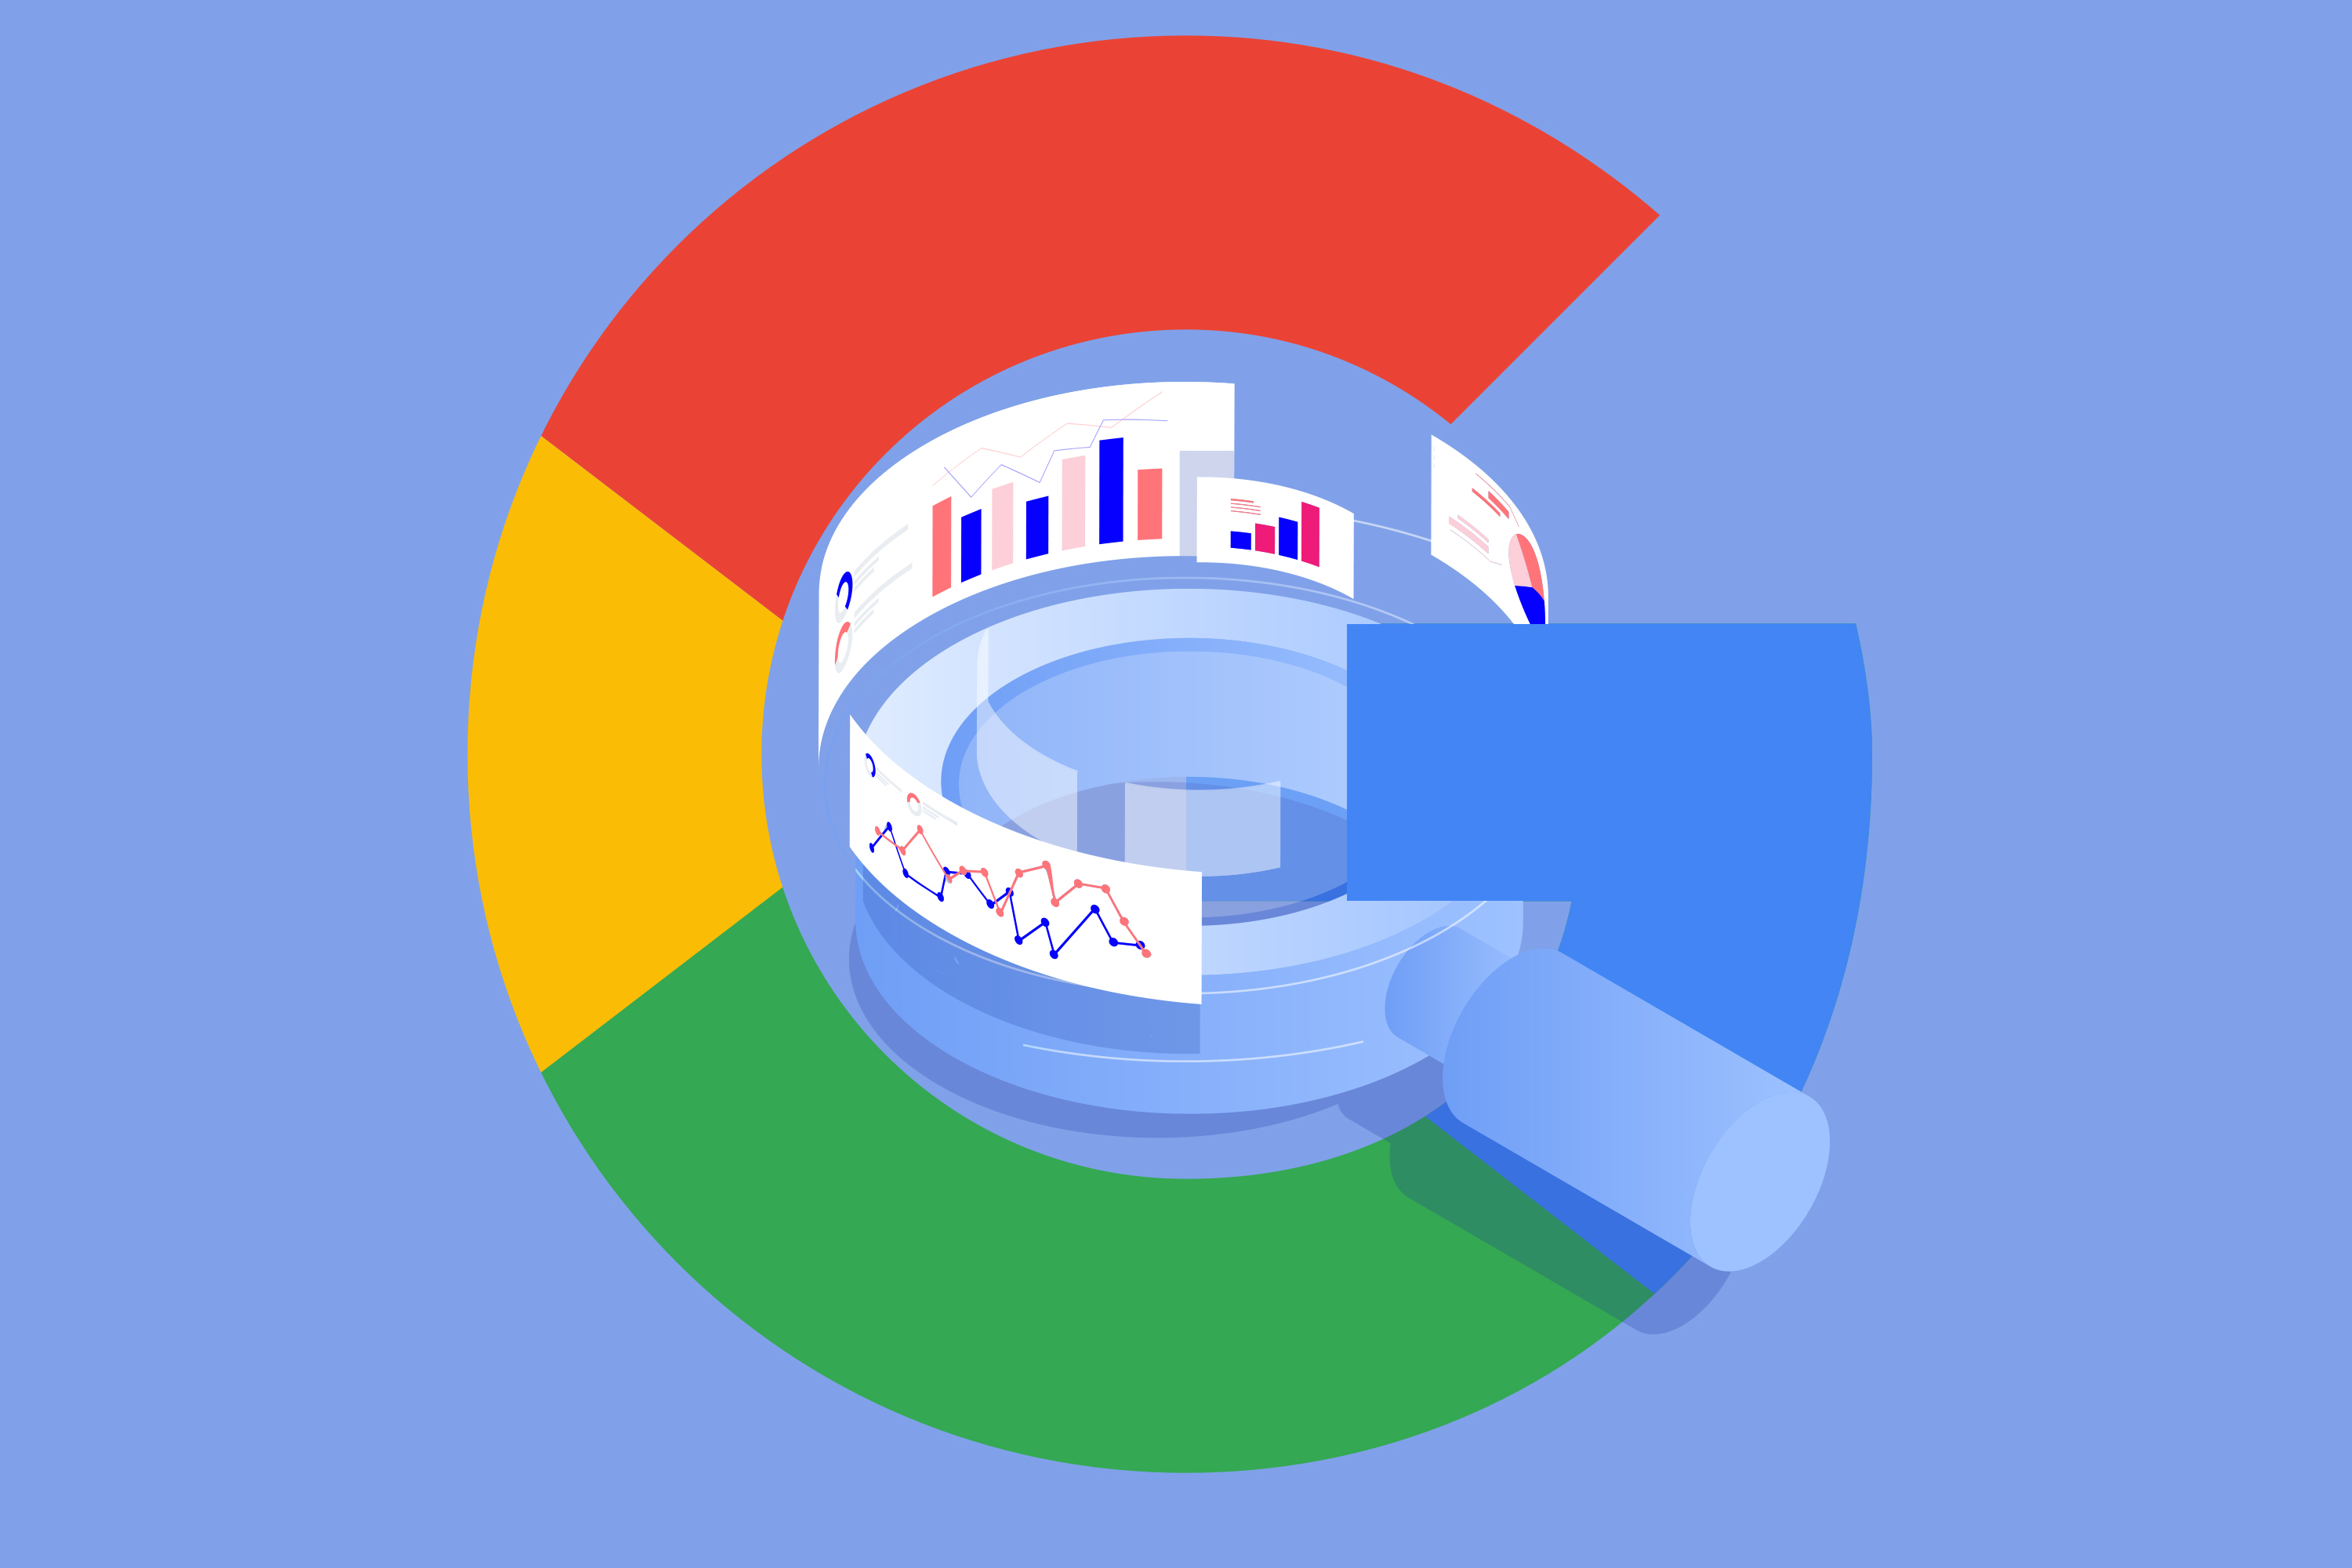 Google is launching a new tool that surfaces fast growing, product-related categories based on Google Search data. This is the first time the search giant has provided such information.